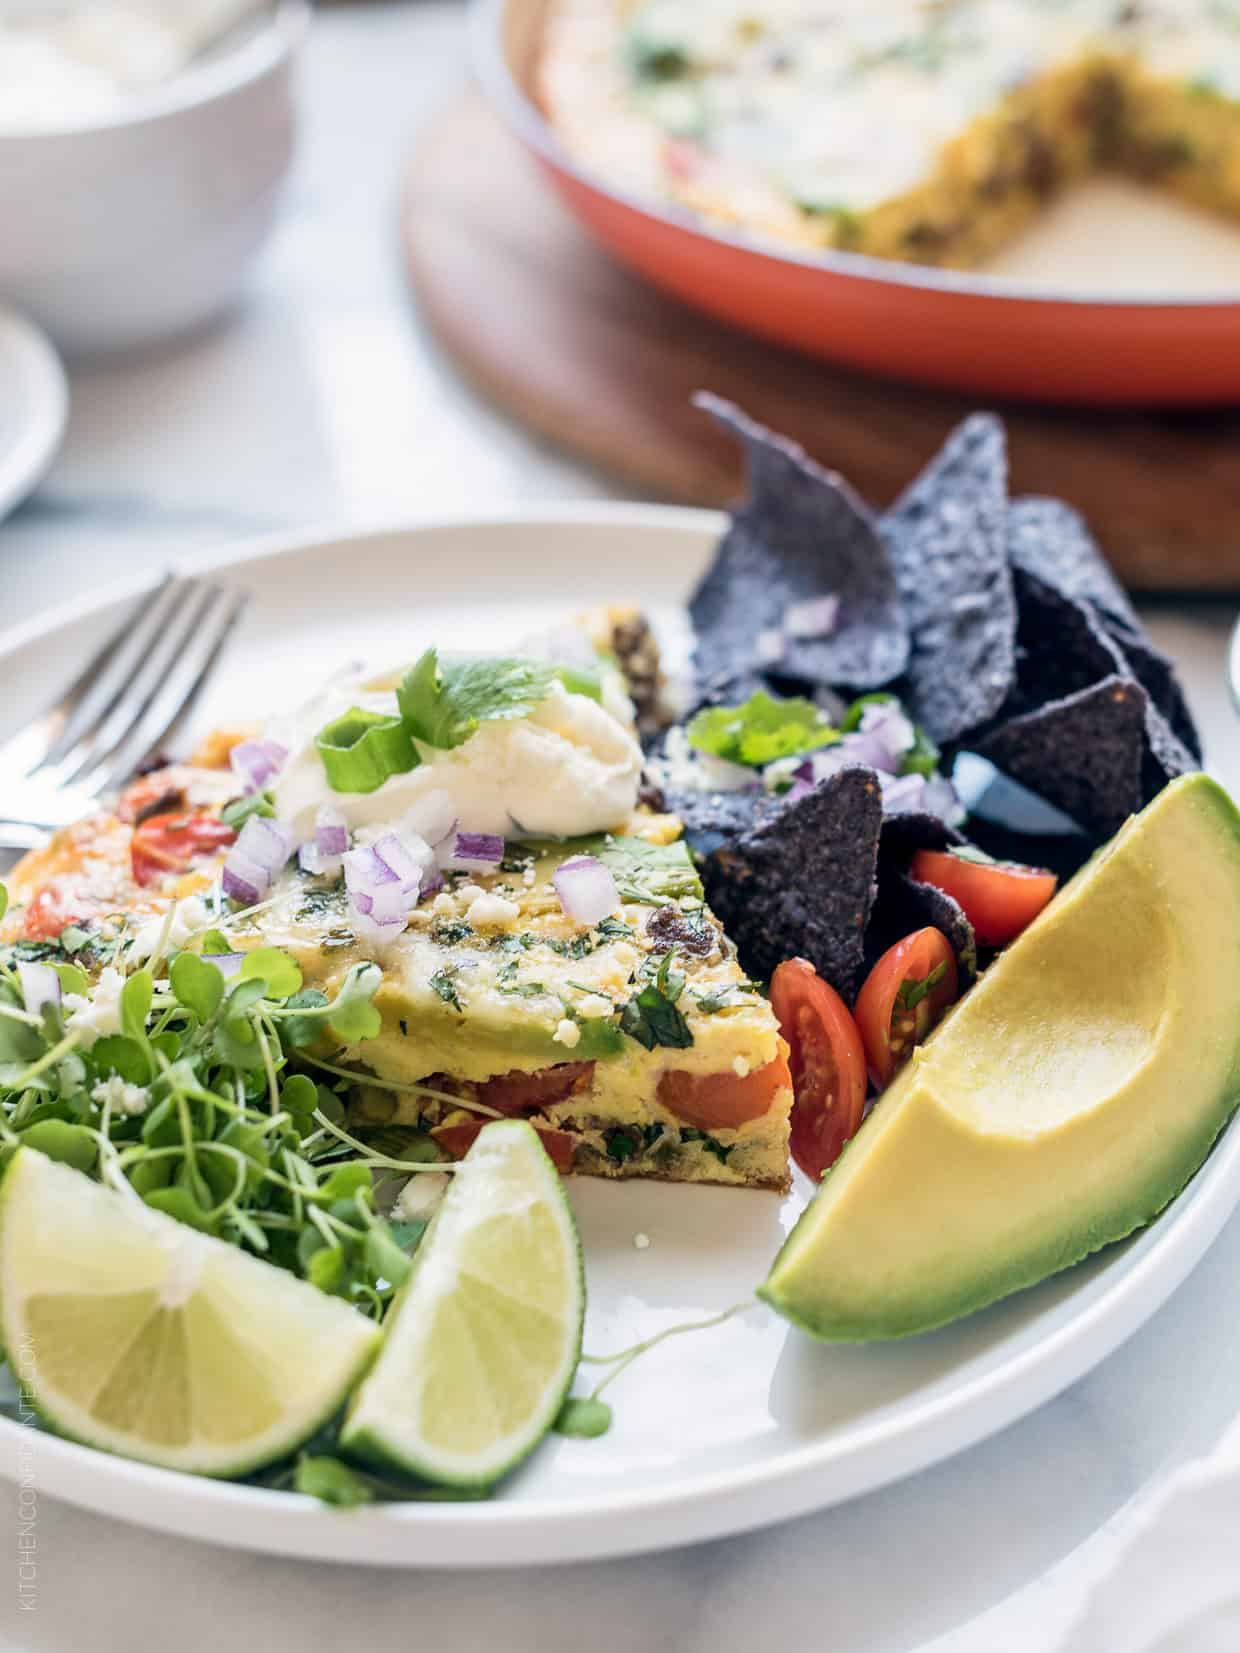 Wedge of taco frittata surrounded by a garnish of lime slices, tortilla chips, and avocado.